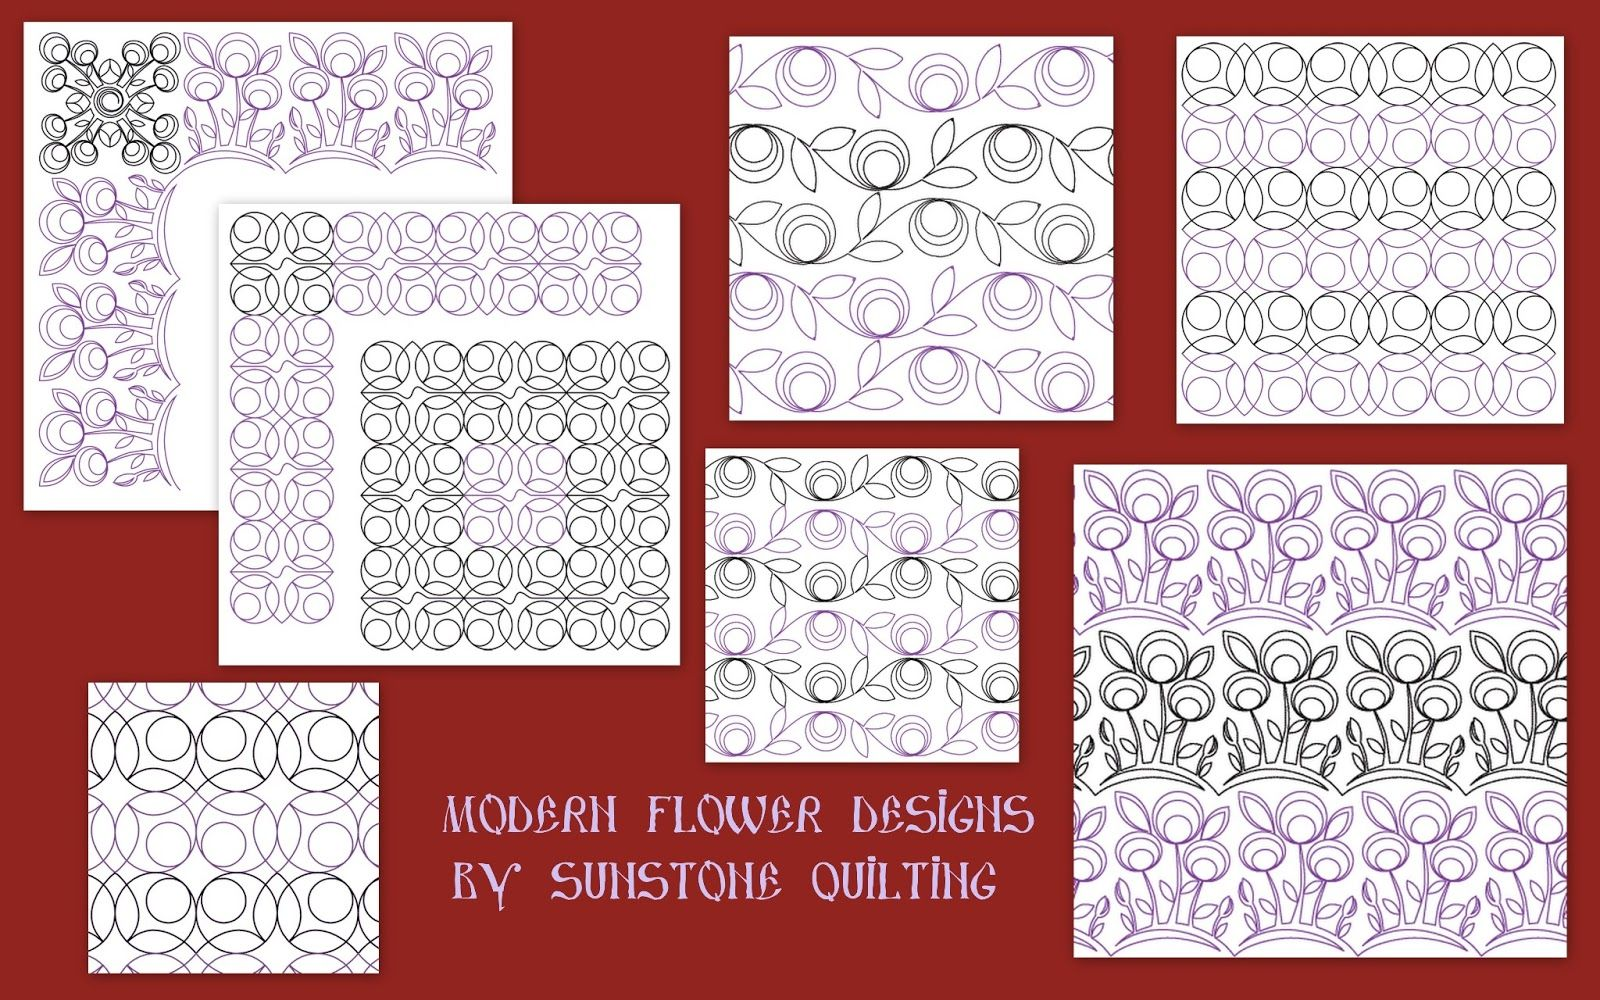 From Sunstone Quilting